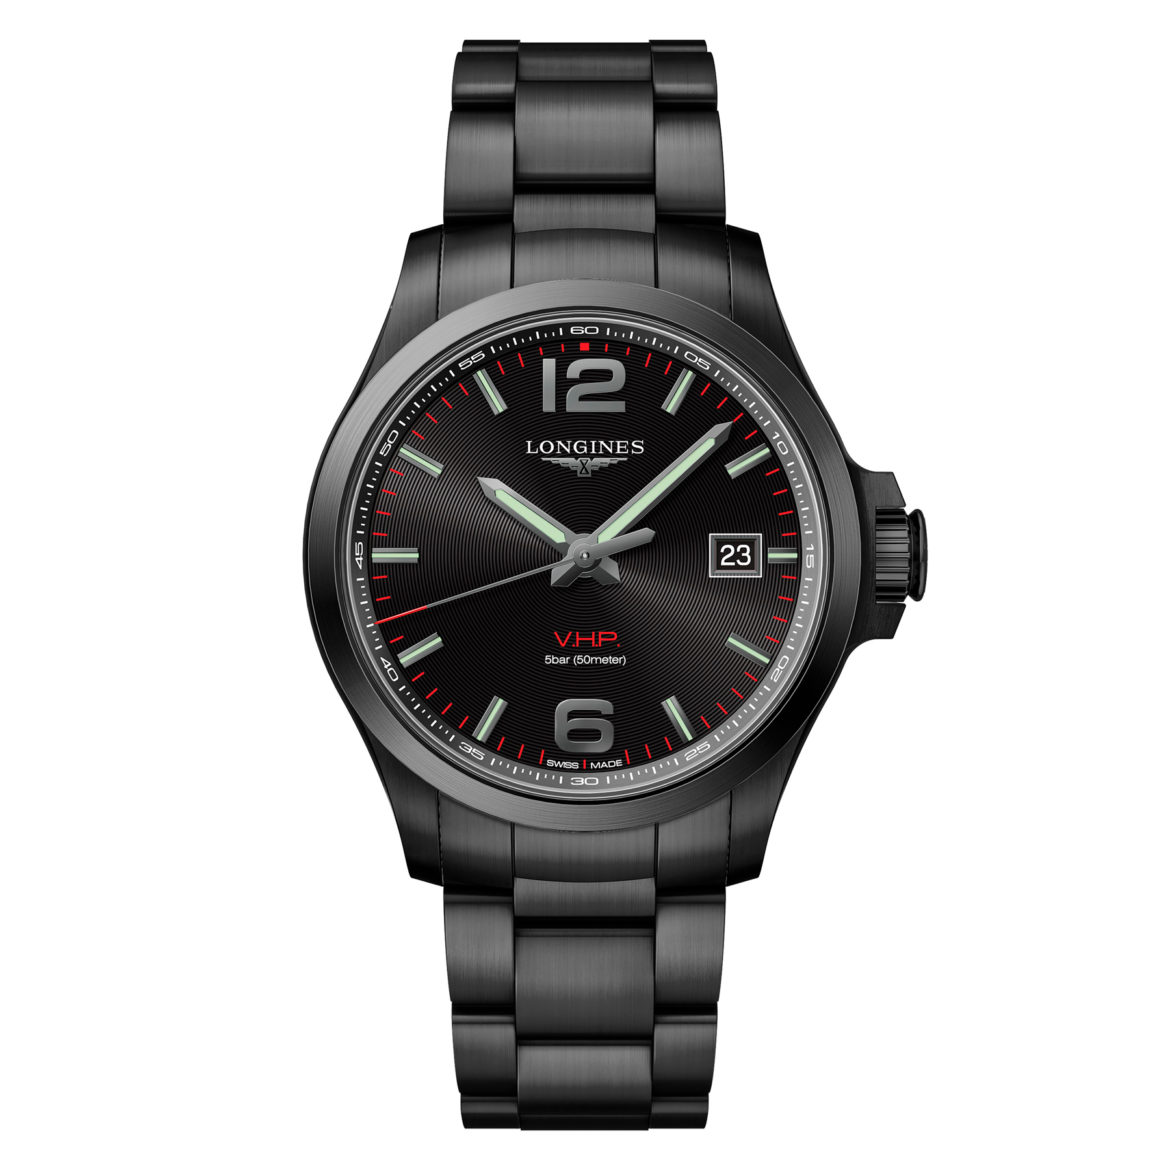 LONGINES</br/>Conquest VHP</br/>L37262566